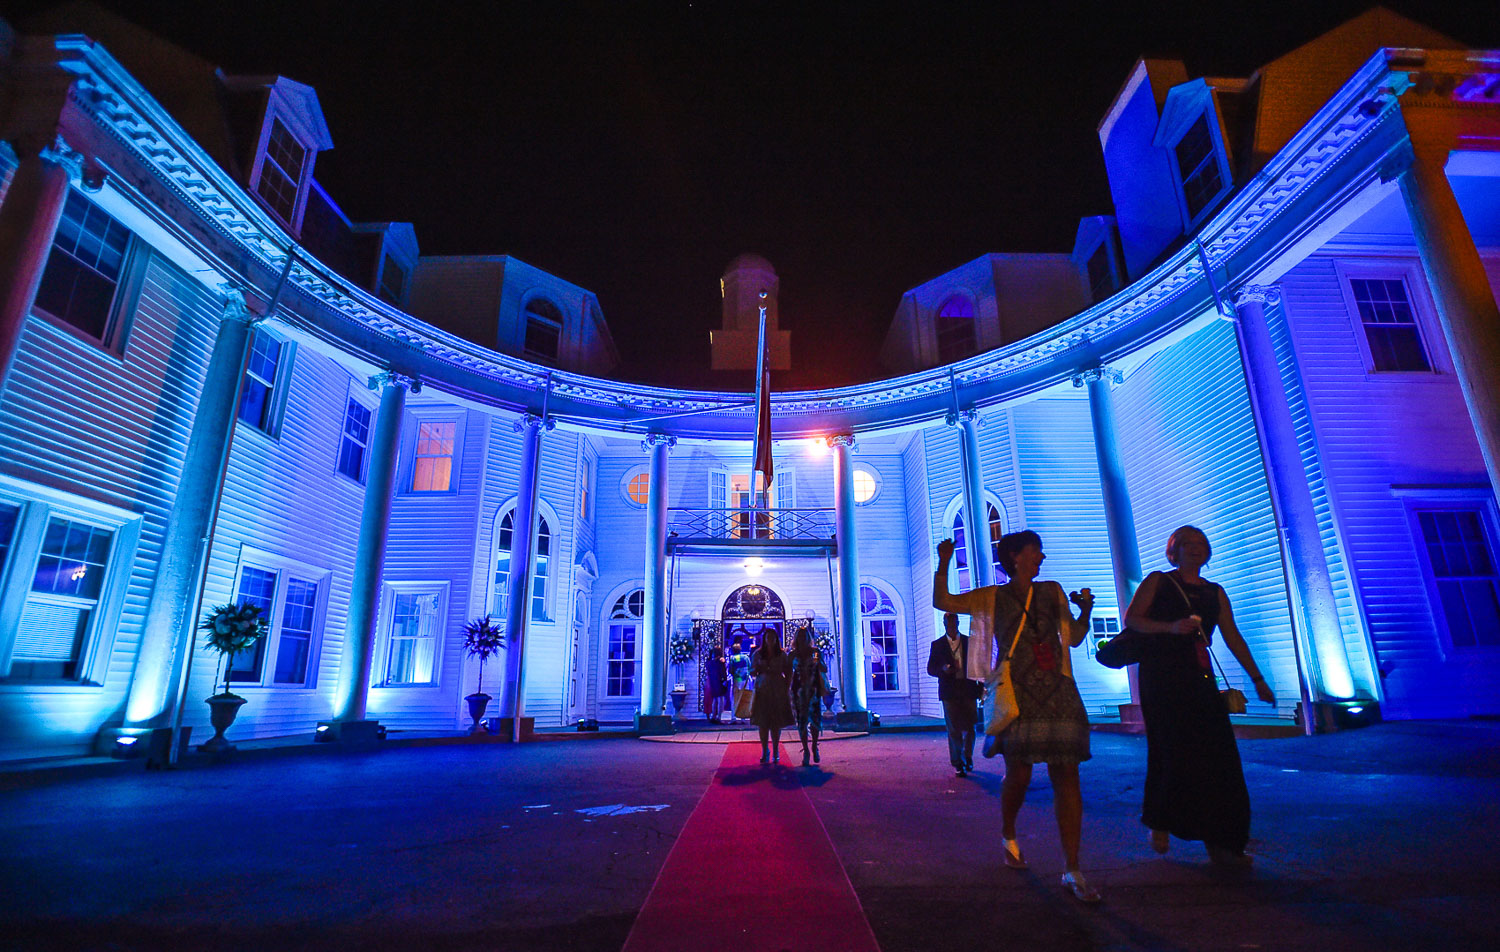 Nikon D42, 1/100 @ f/2.8, ISO 2500, 17-35mm  Guests are seen leaving the Swampscott White Court Estate after the Northshore Magazine's annual Best of the North Shore event, Thursday, Aug. 24, 2017. [Wicked Local Staff Photo / David Sokol]